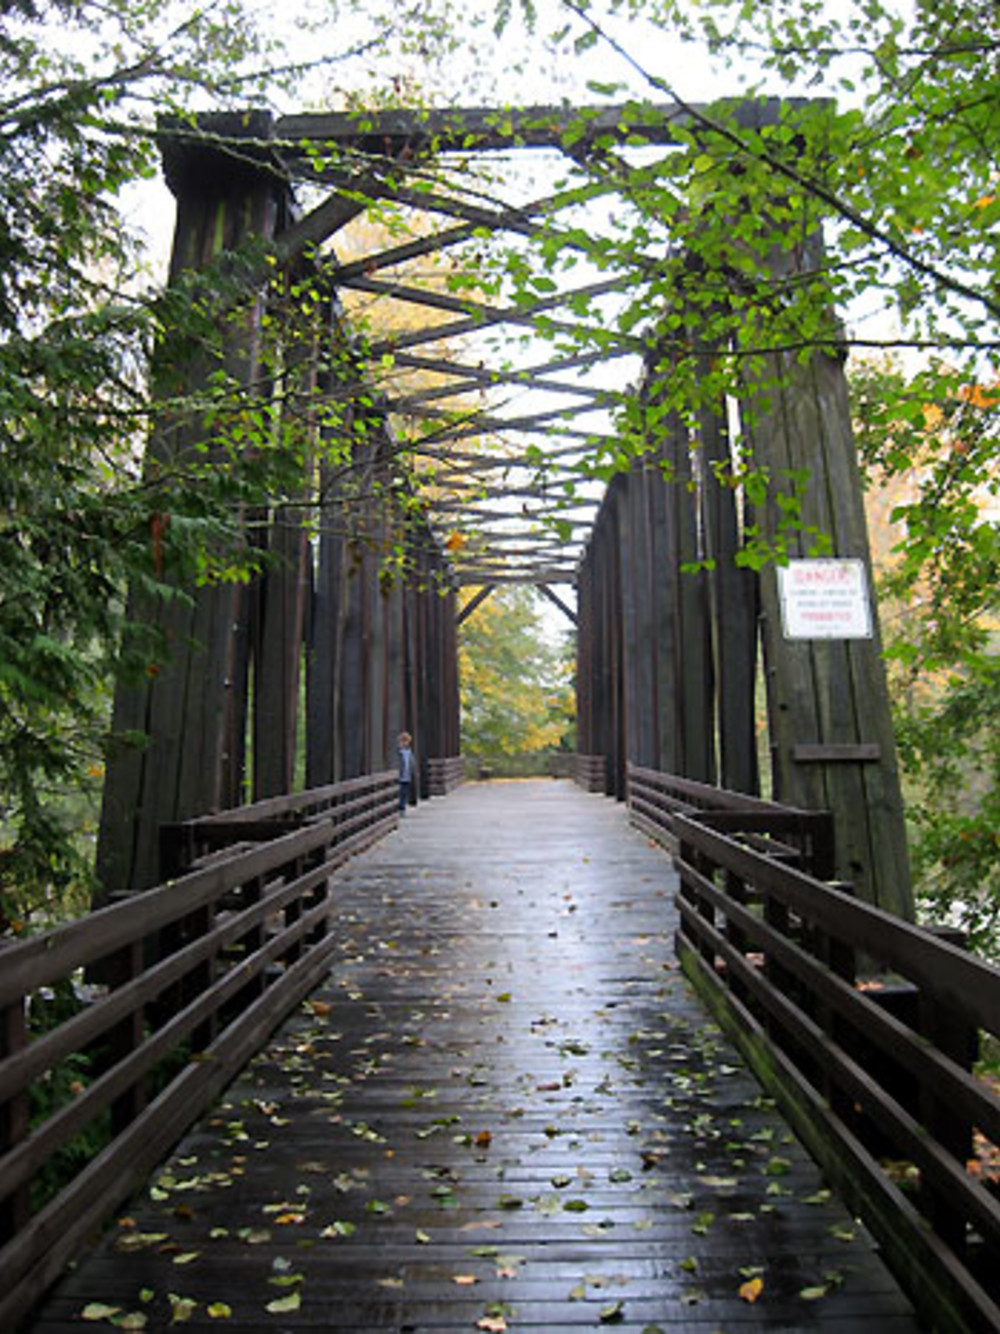 Day 5: Railroad Bridge Park and Dungeness River Audubon Center(15from Olympic Game Farm)